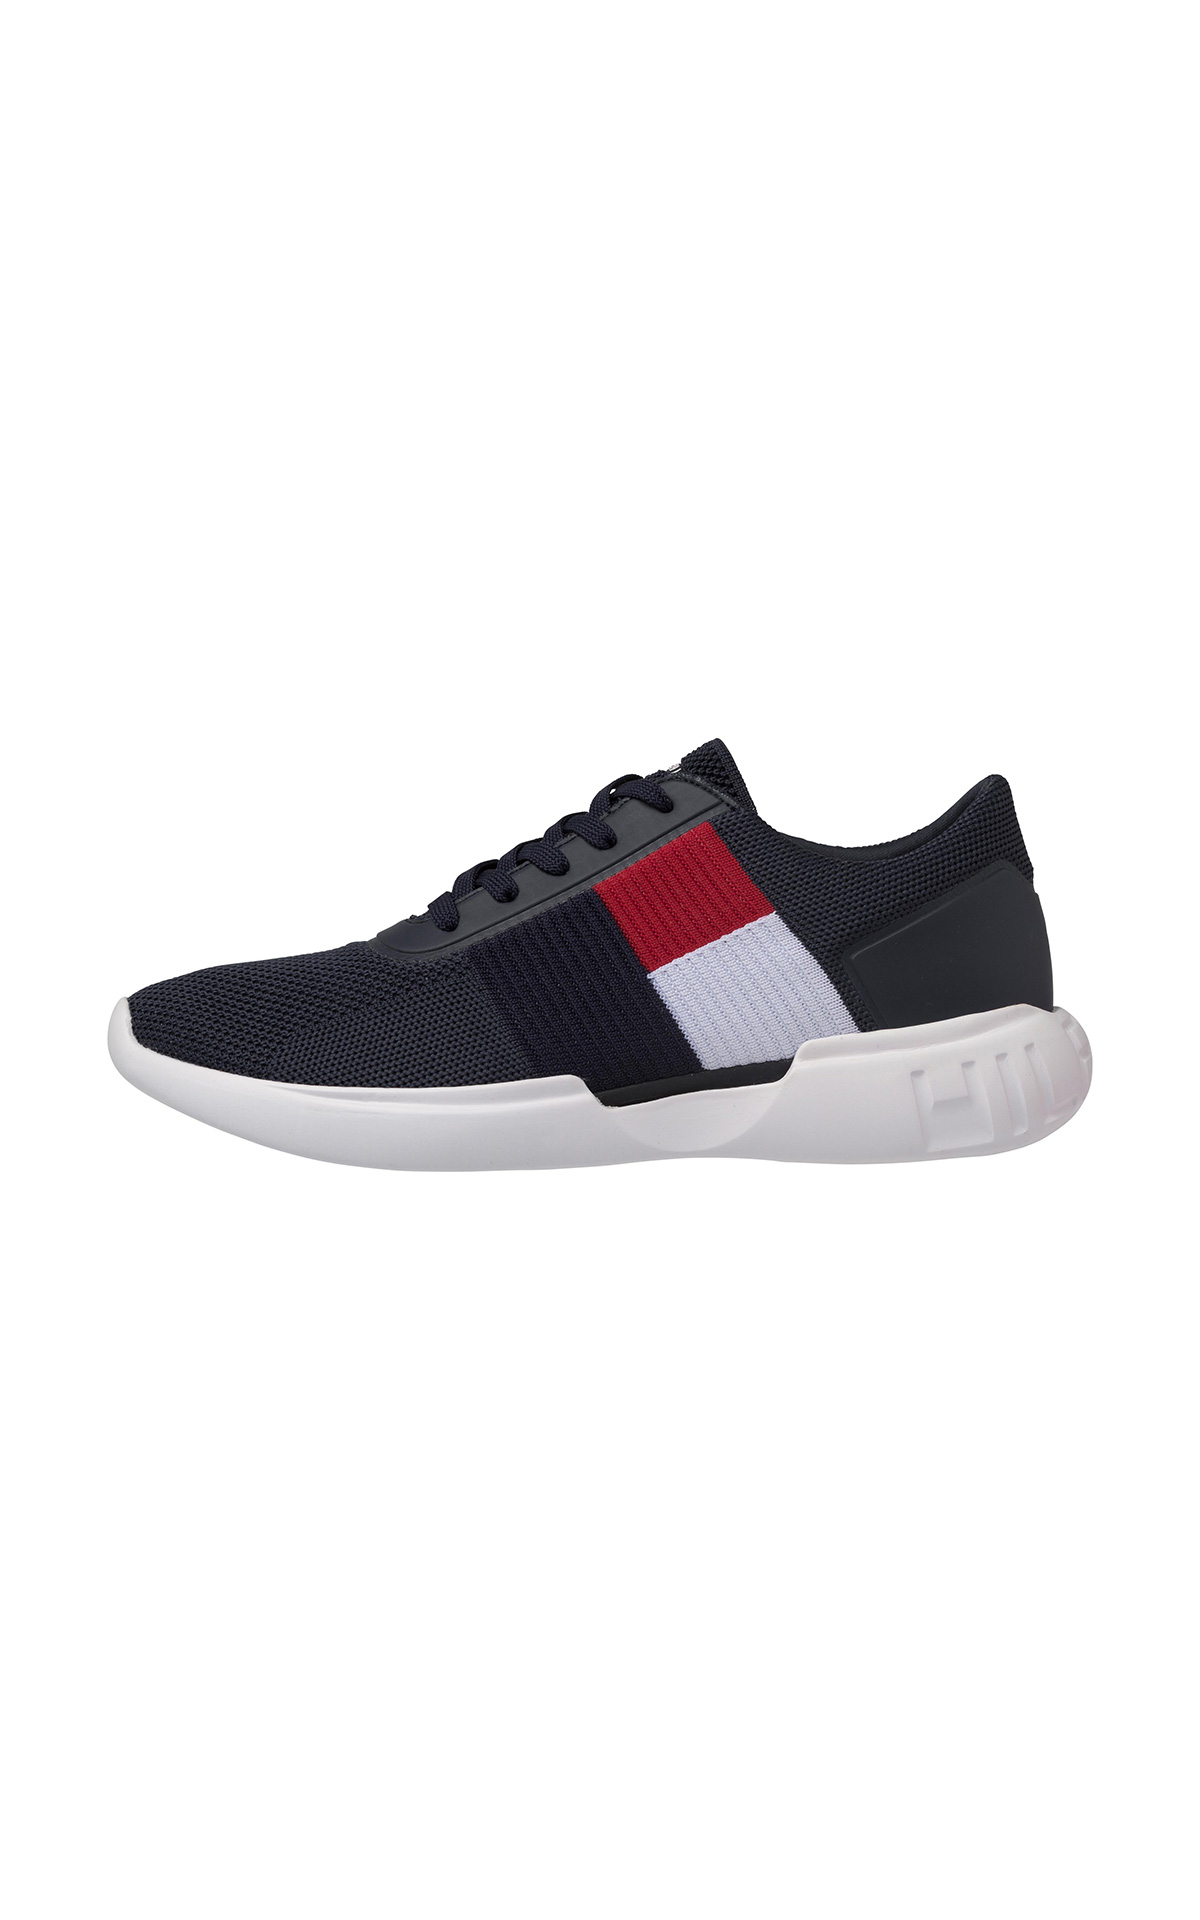 Tommy Hilfiger mens sneakers at The Bicester Village Shopping Collection